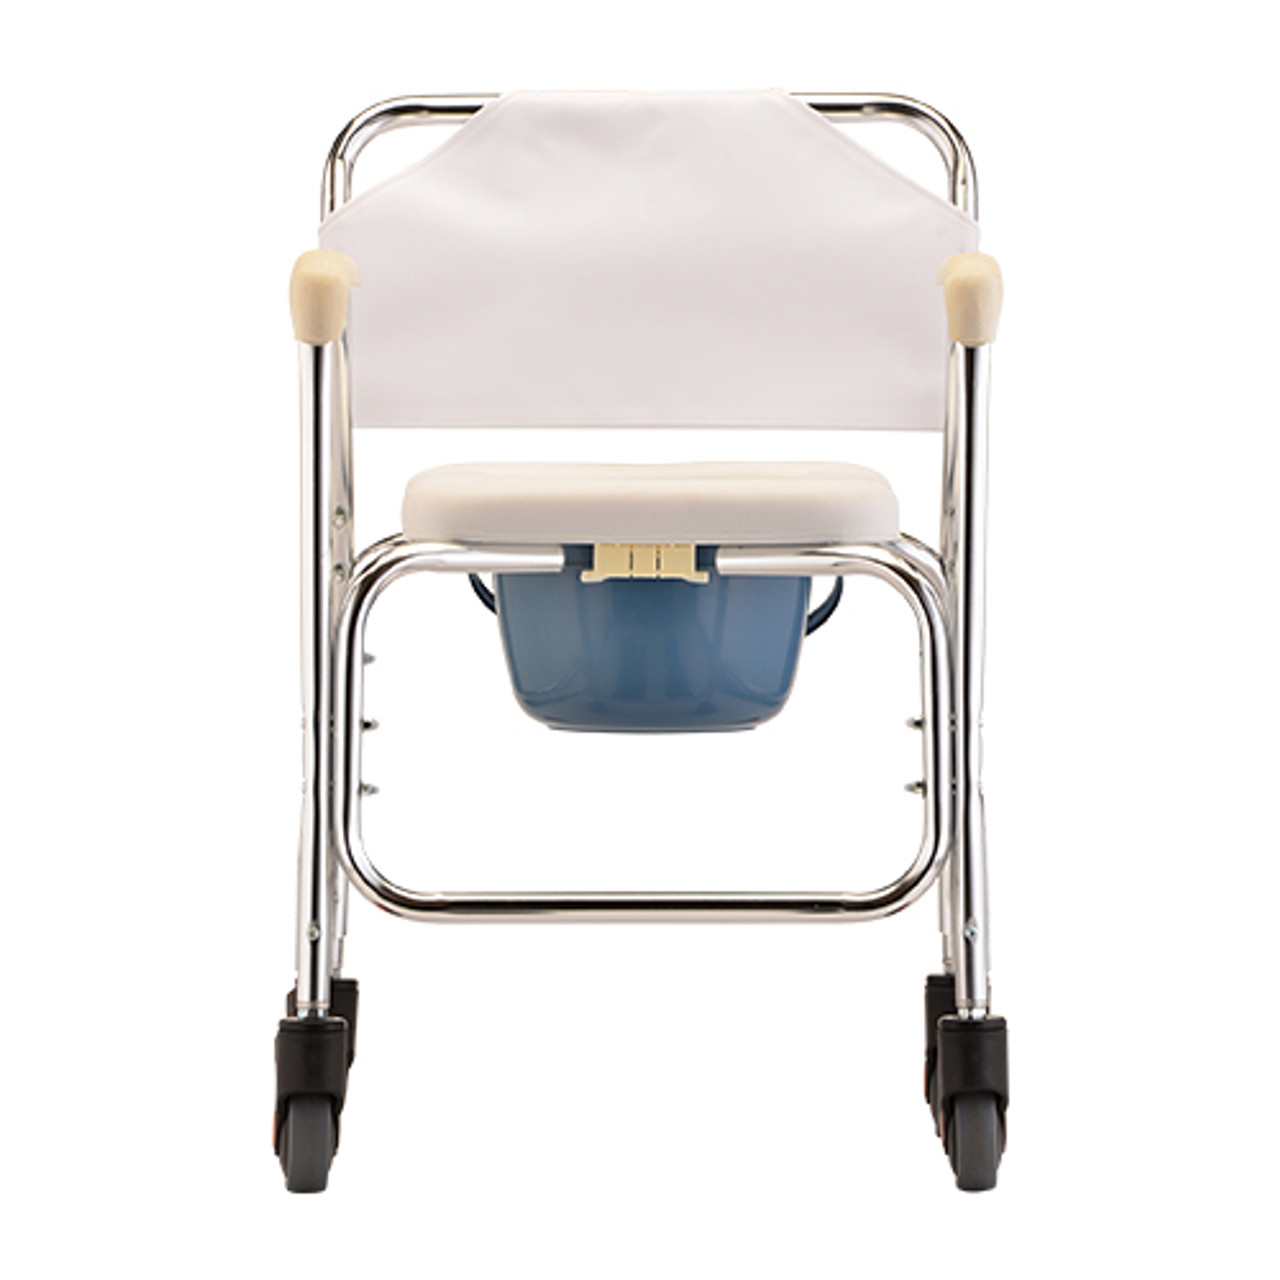 Rolling Shower Chair and Commode front view